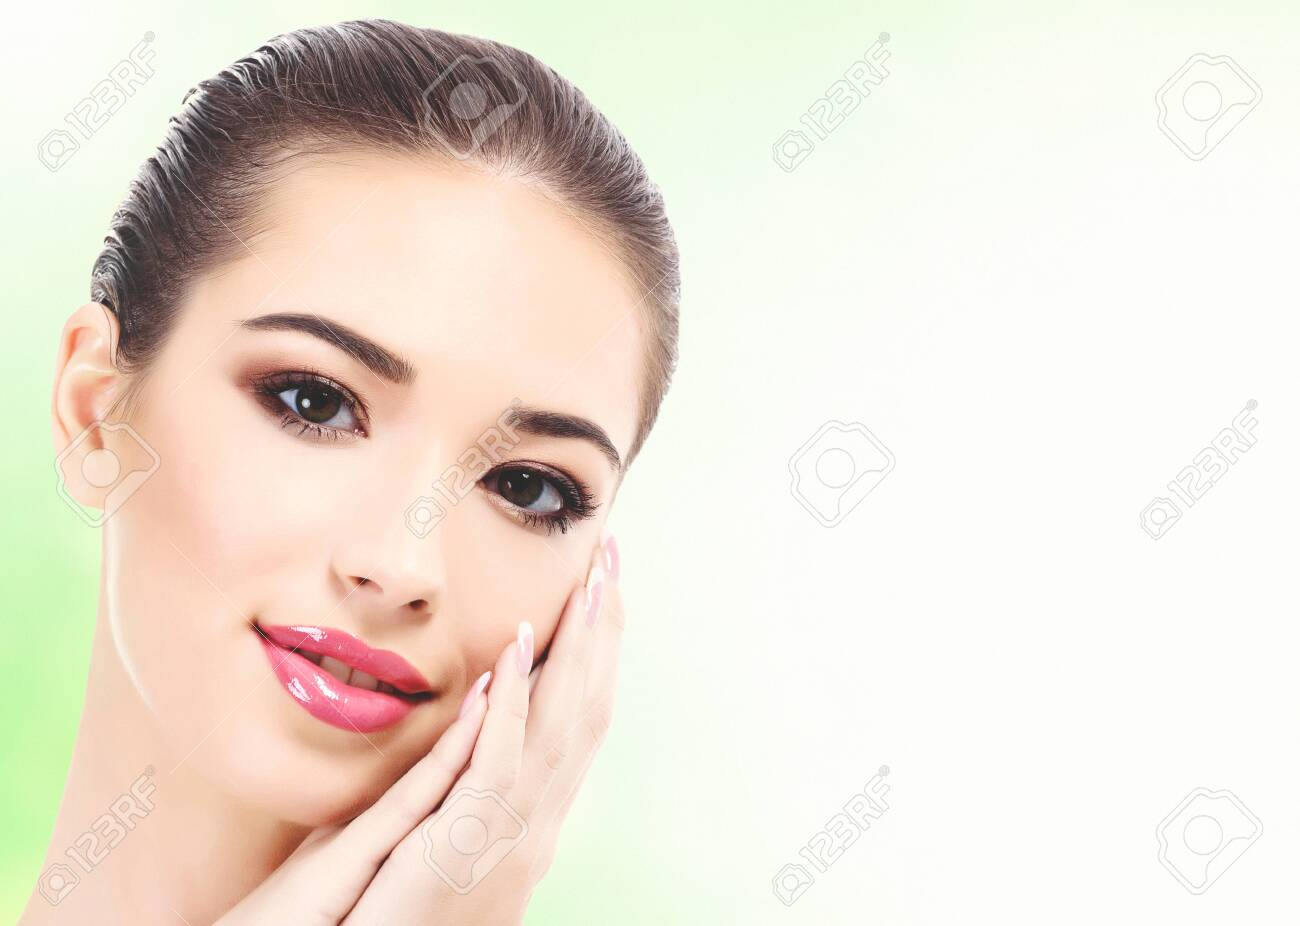 Closeup shot of beautiful woman with clean fresh skin, abstract green blurred background with copyspace - 121768134